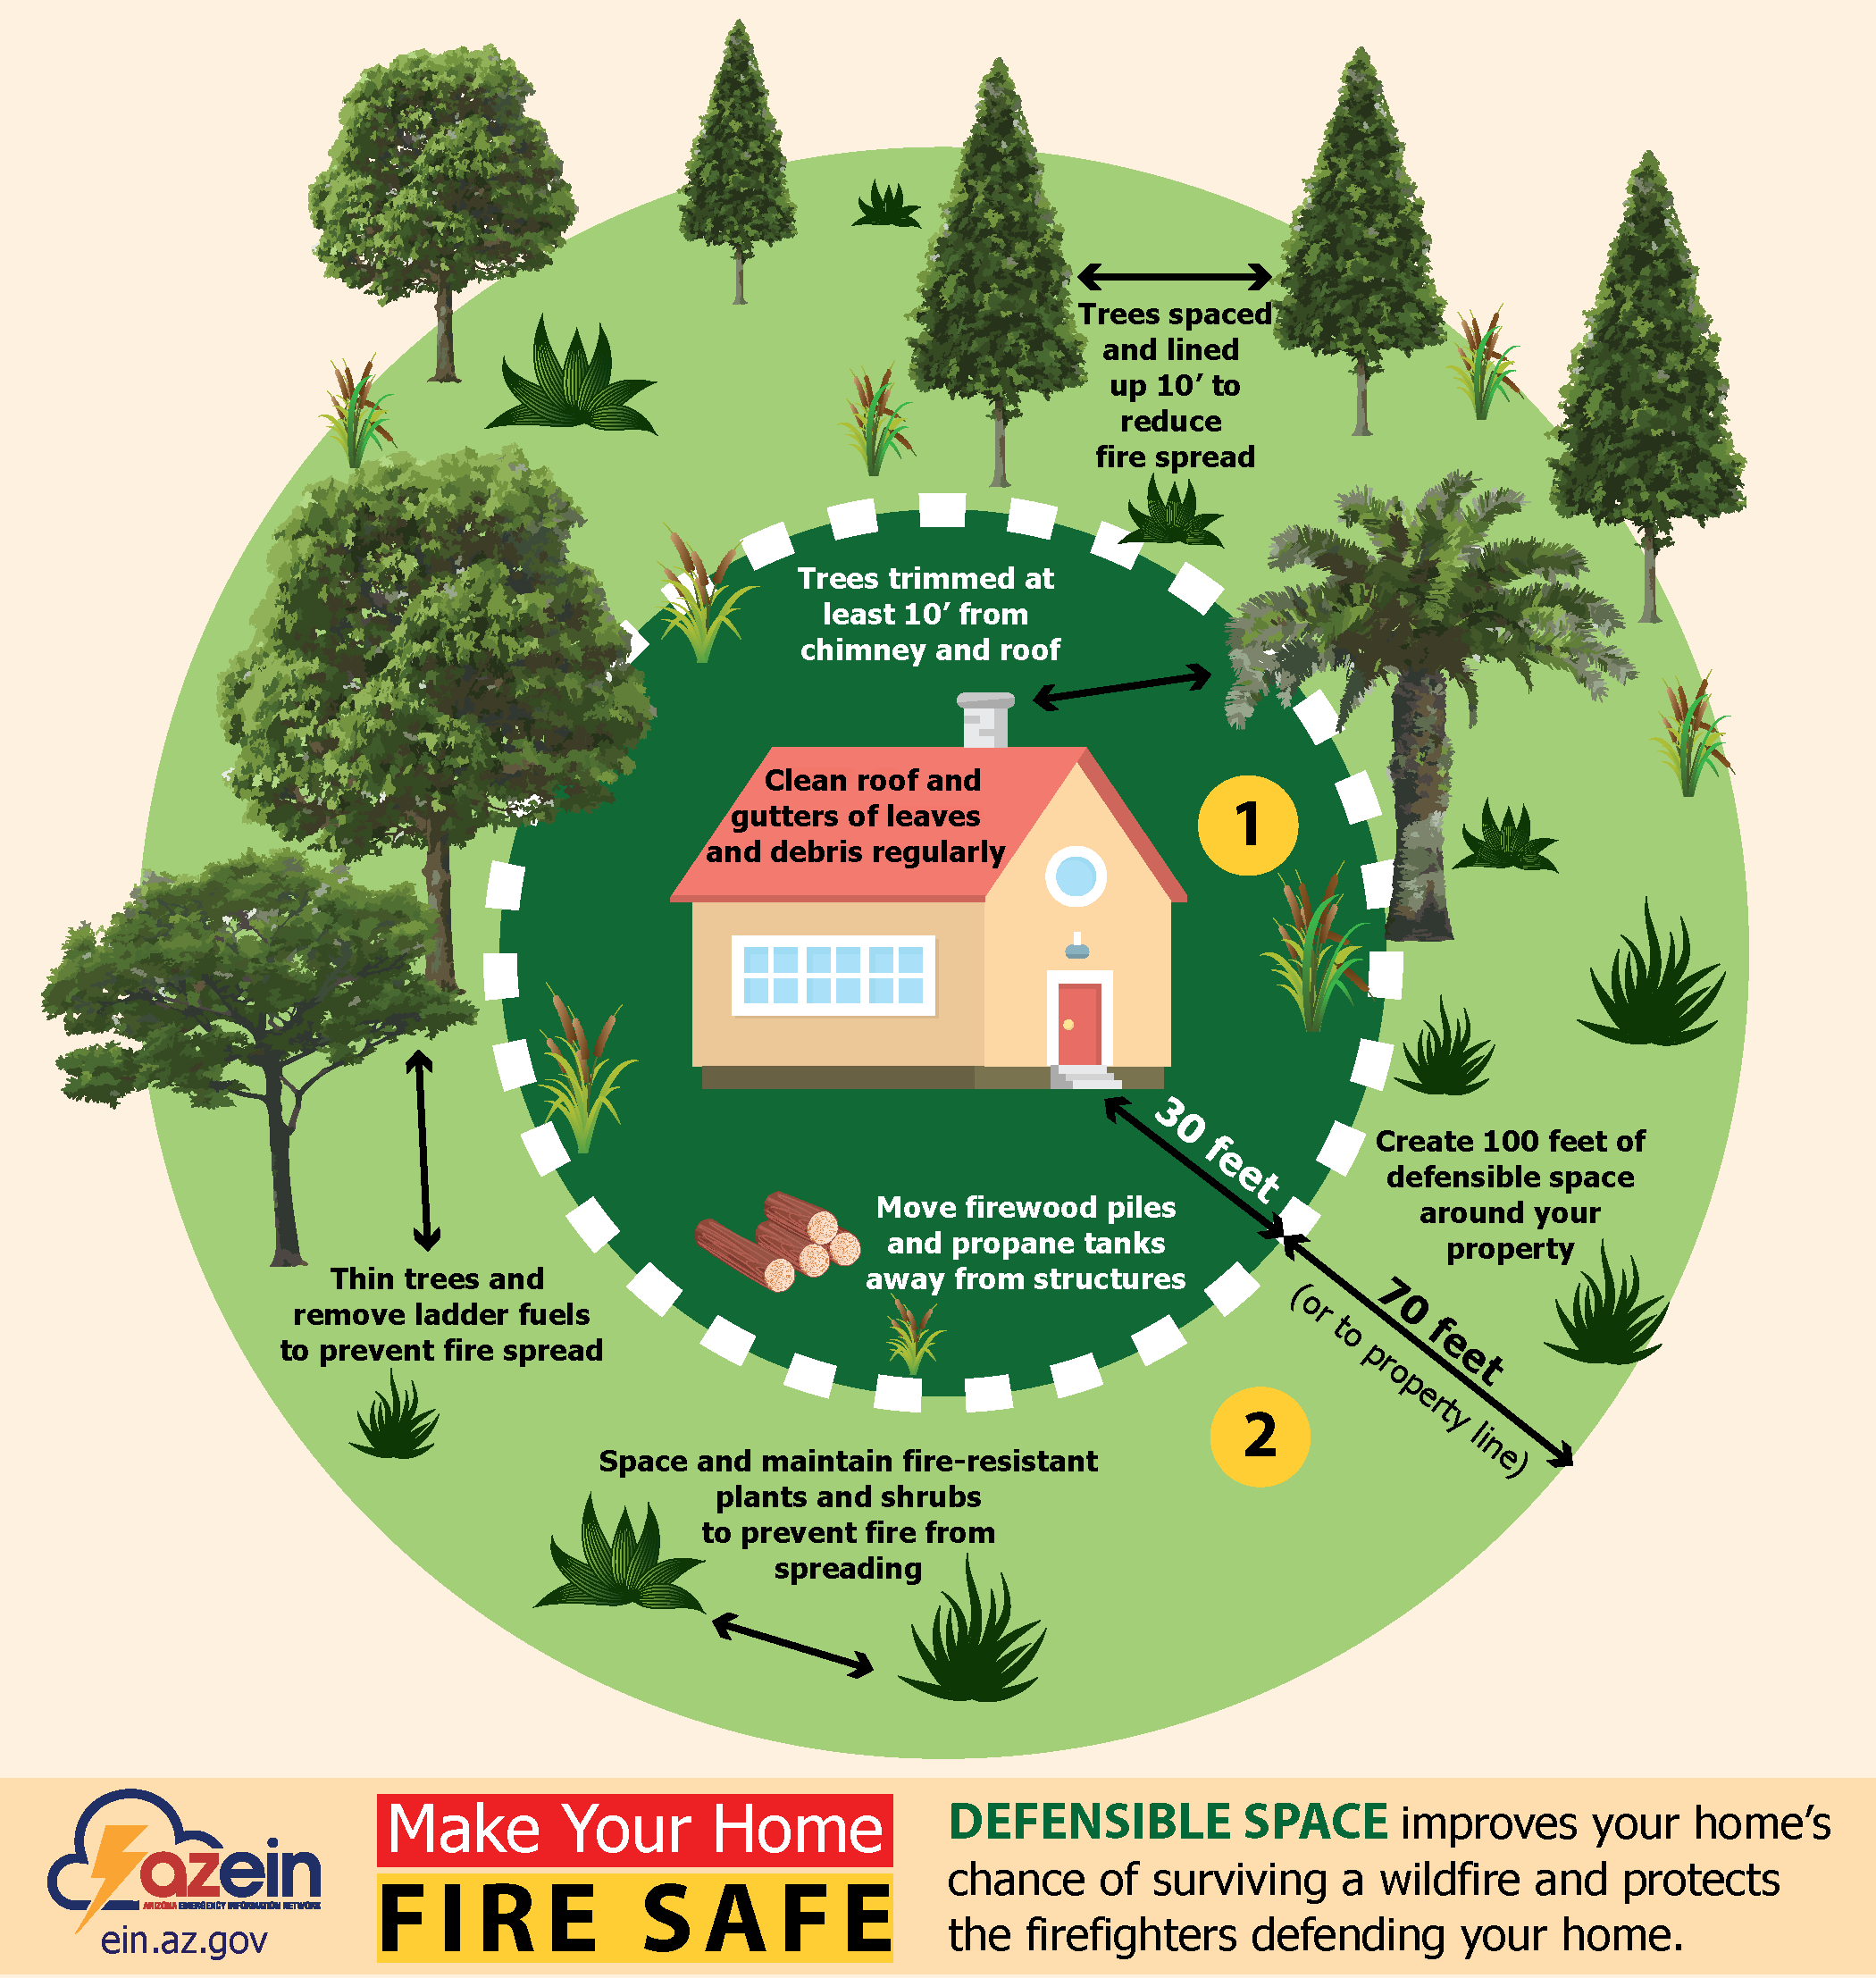 This graphic shows how to build defensible space around your home.